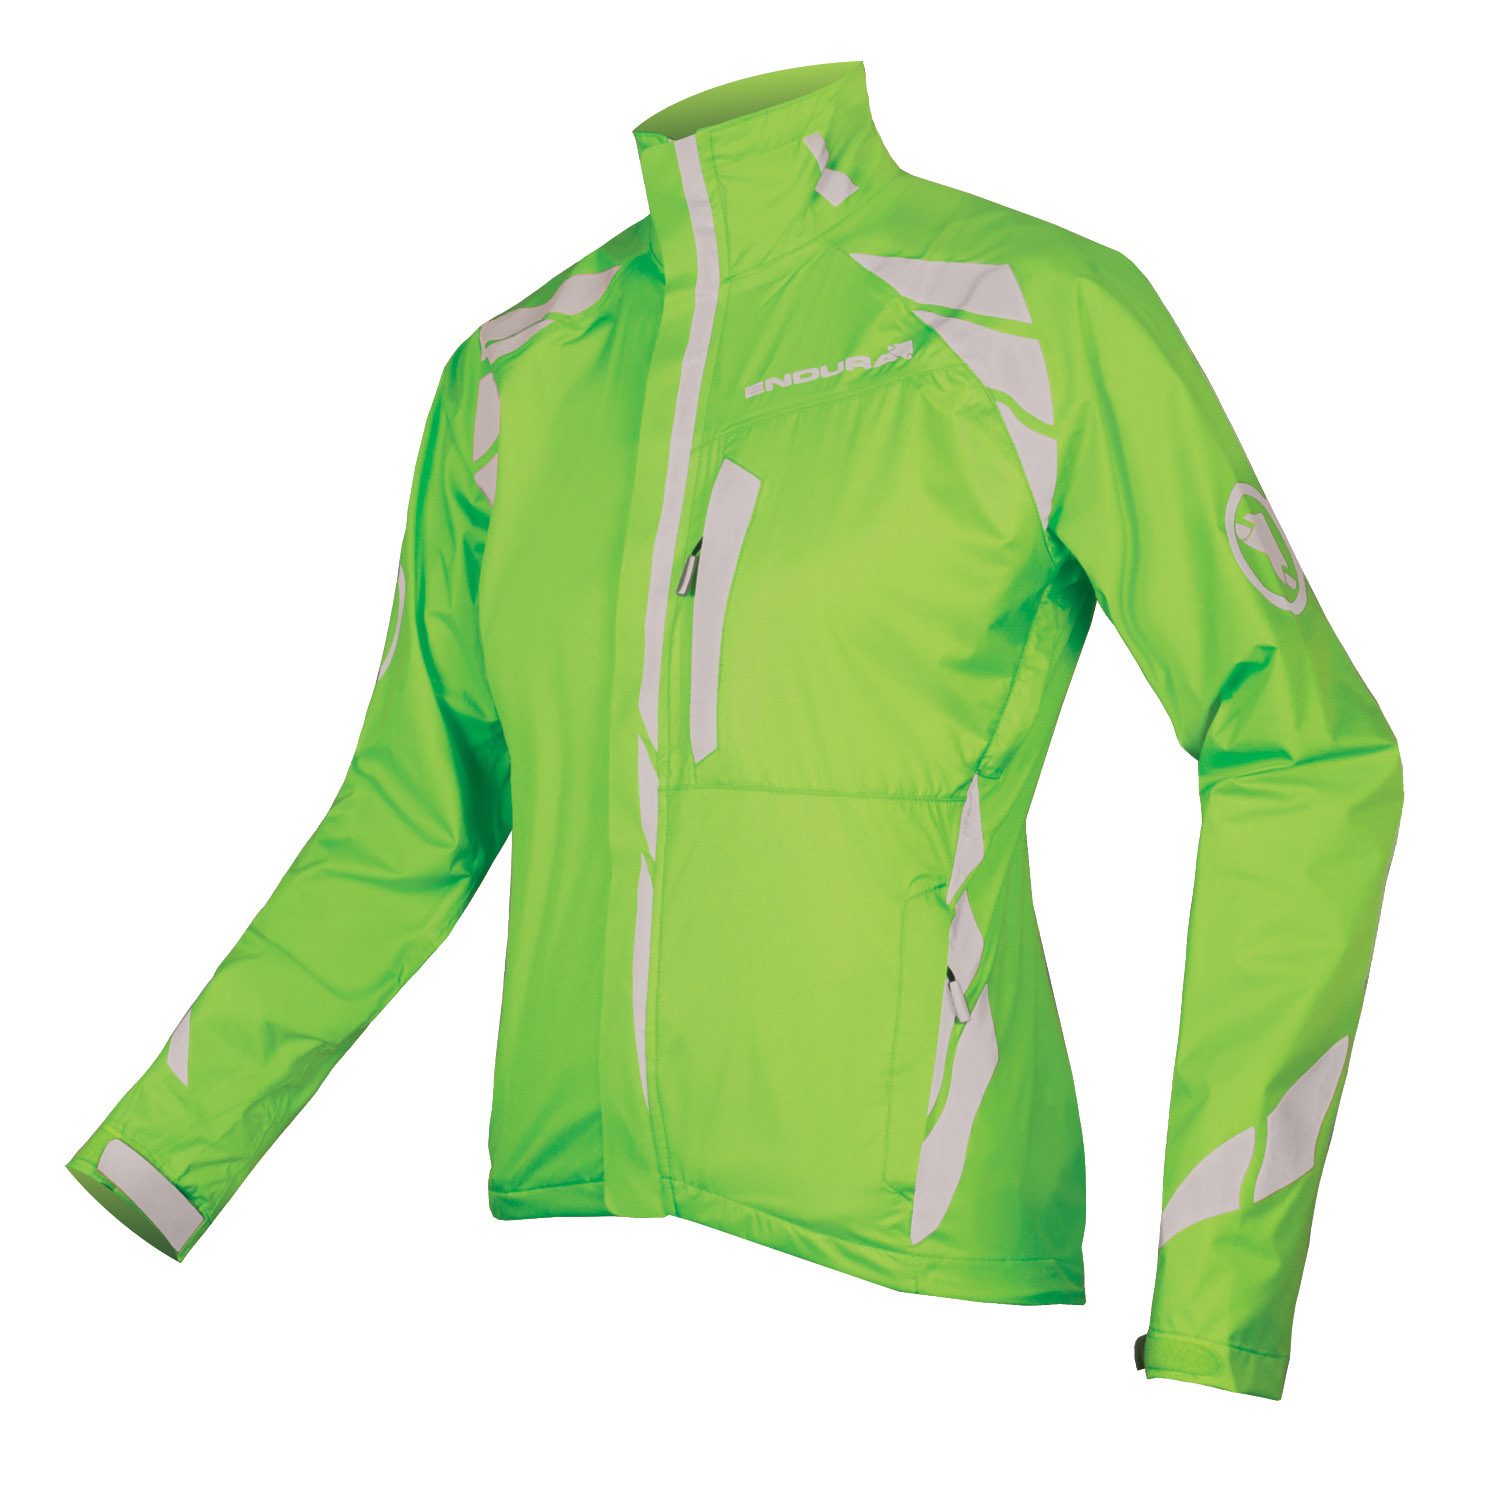 Women's Luminite II Jacket Hi-Viz Green